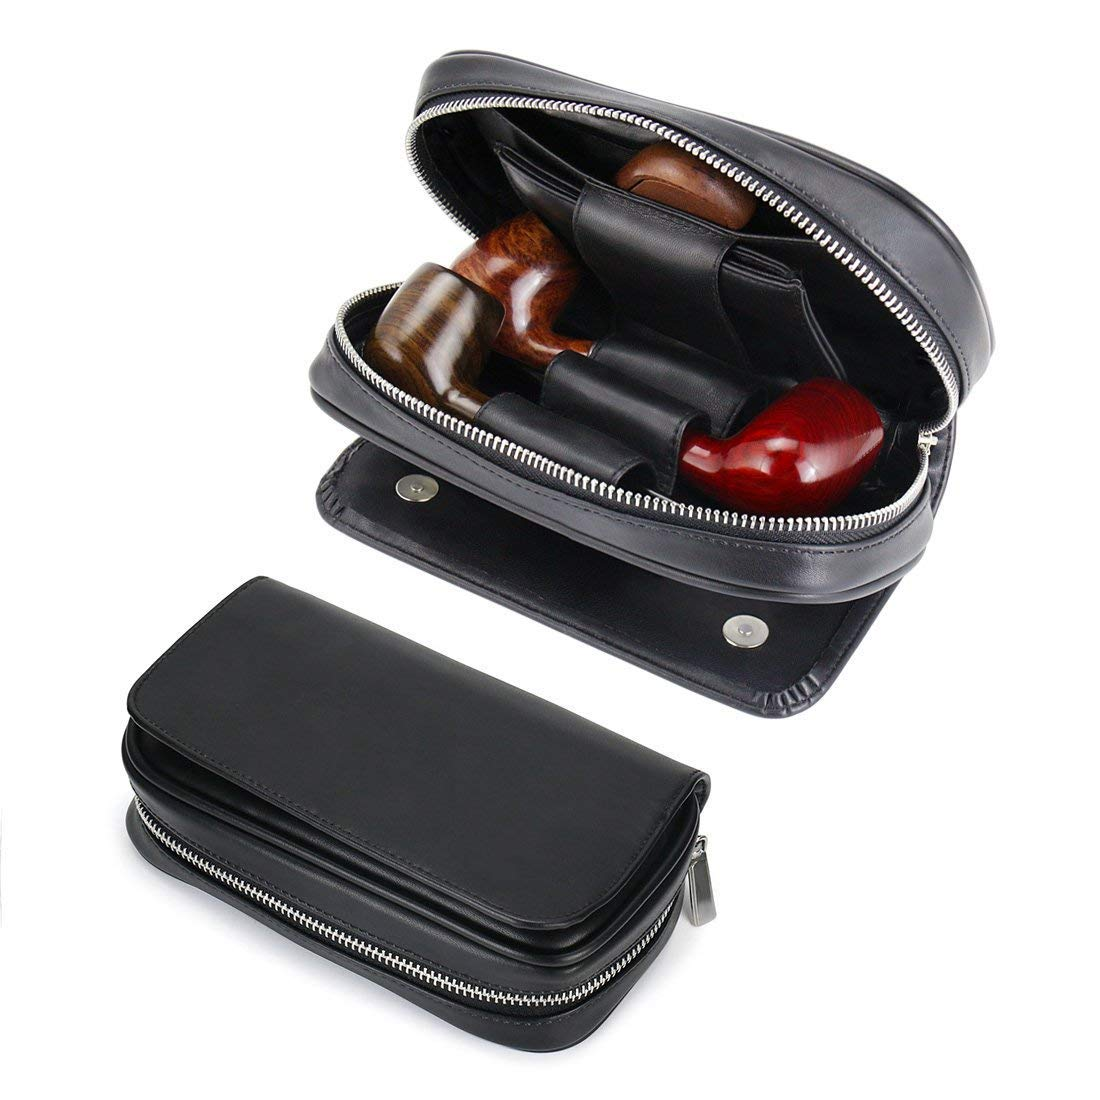 Joyoldelf Leather Tobacco Pipe Bag - Large Capacity Pipe Pouch, Well Store 3 Pipes & Various Accessories